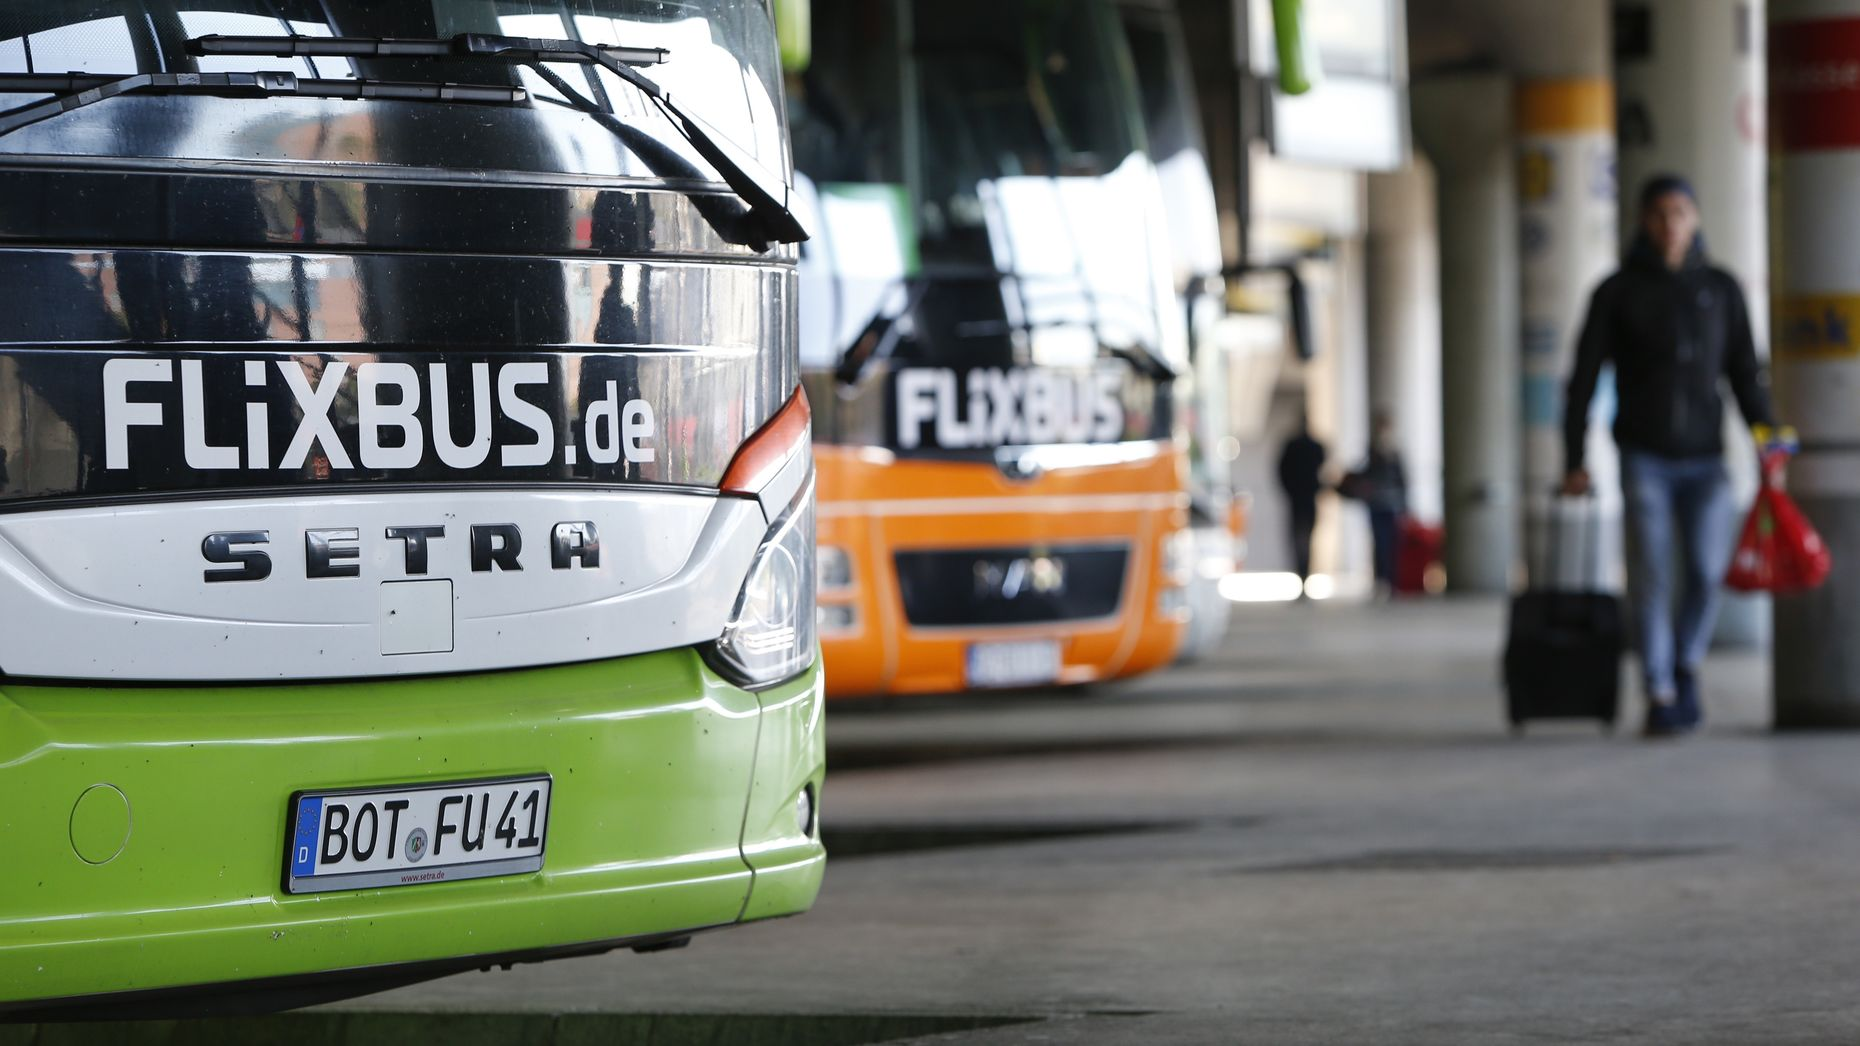 FlixBus buses in Munich. Photo by Bloomberg.